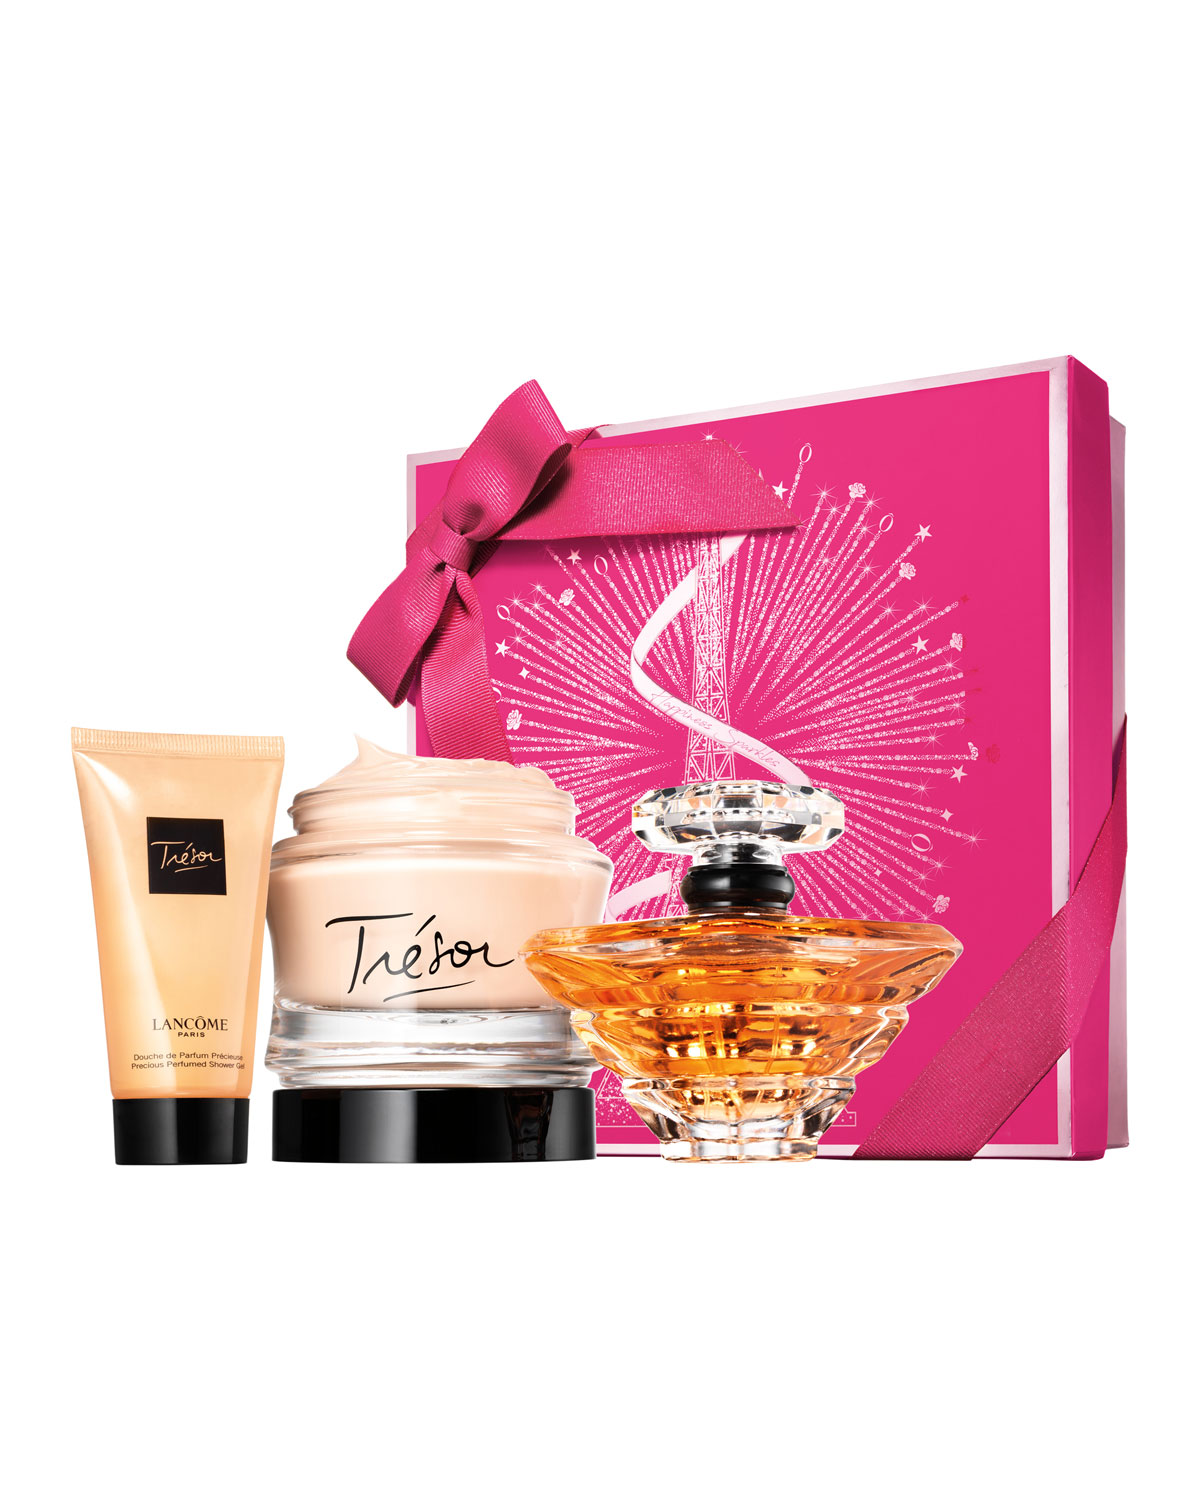 Lancôme TR & #233SOR INSPIRATIONS SET HOLIDAY COLLECTION ($190.50 VALUE)